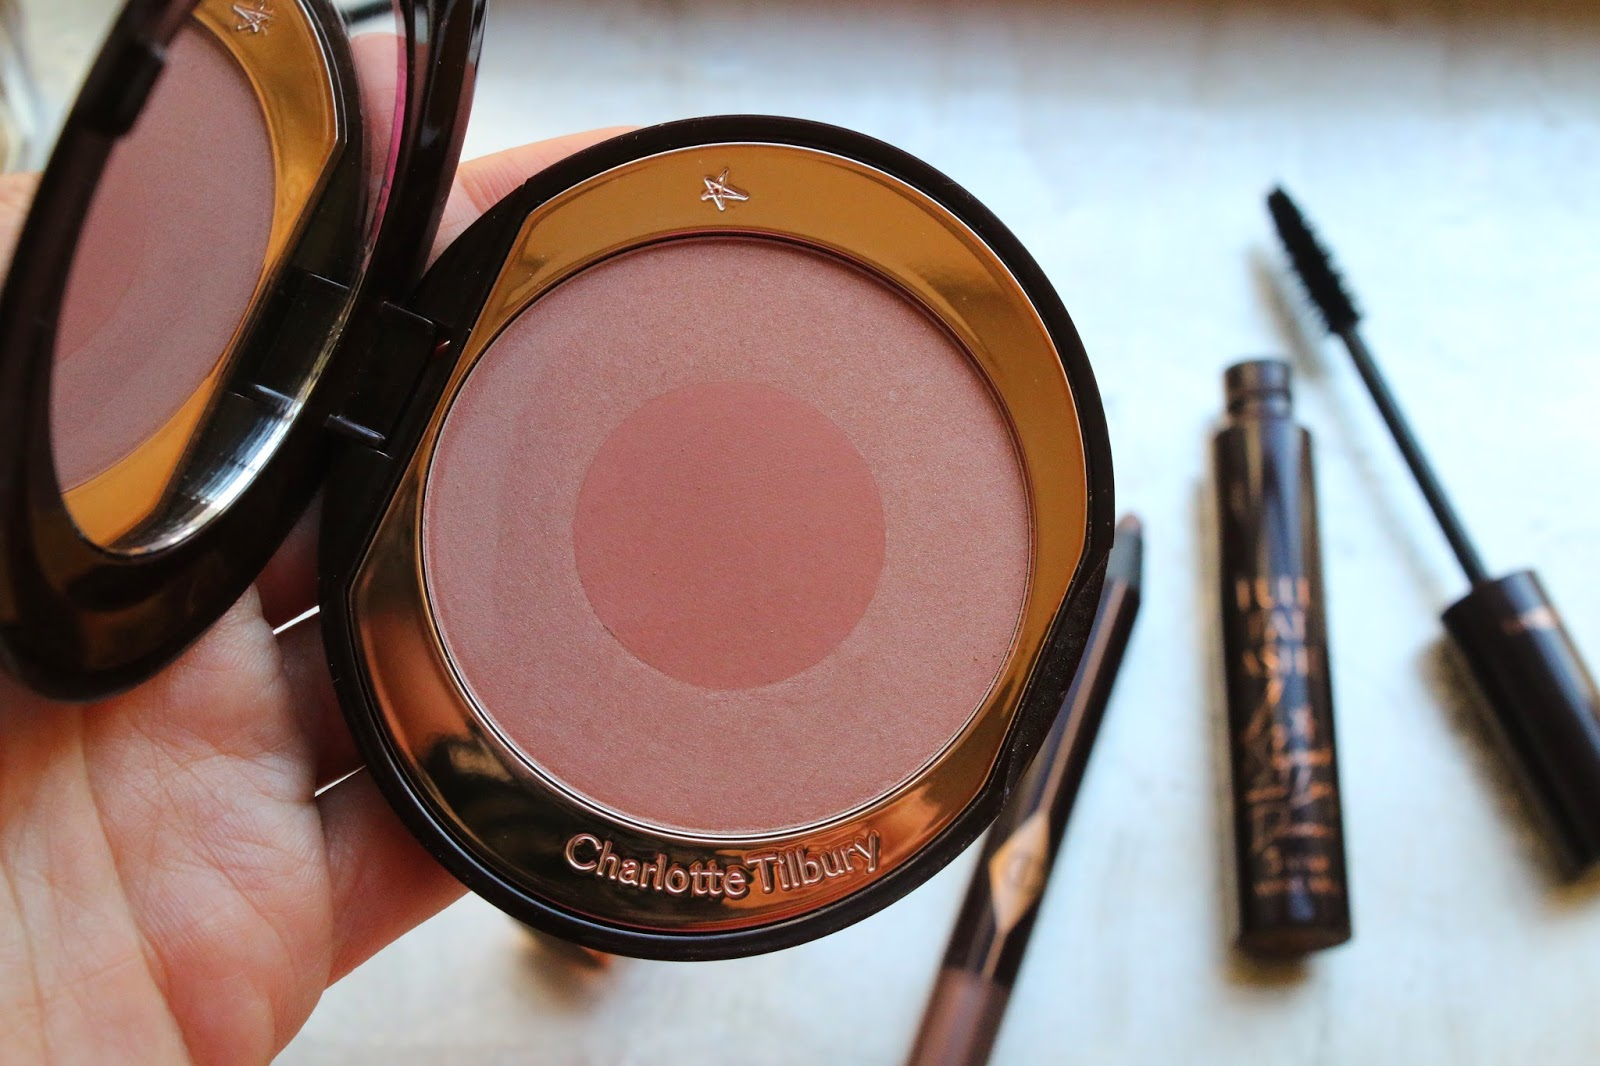 Charlotte Tilbury Cheek to Chic swatches on fair skin